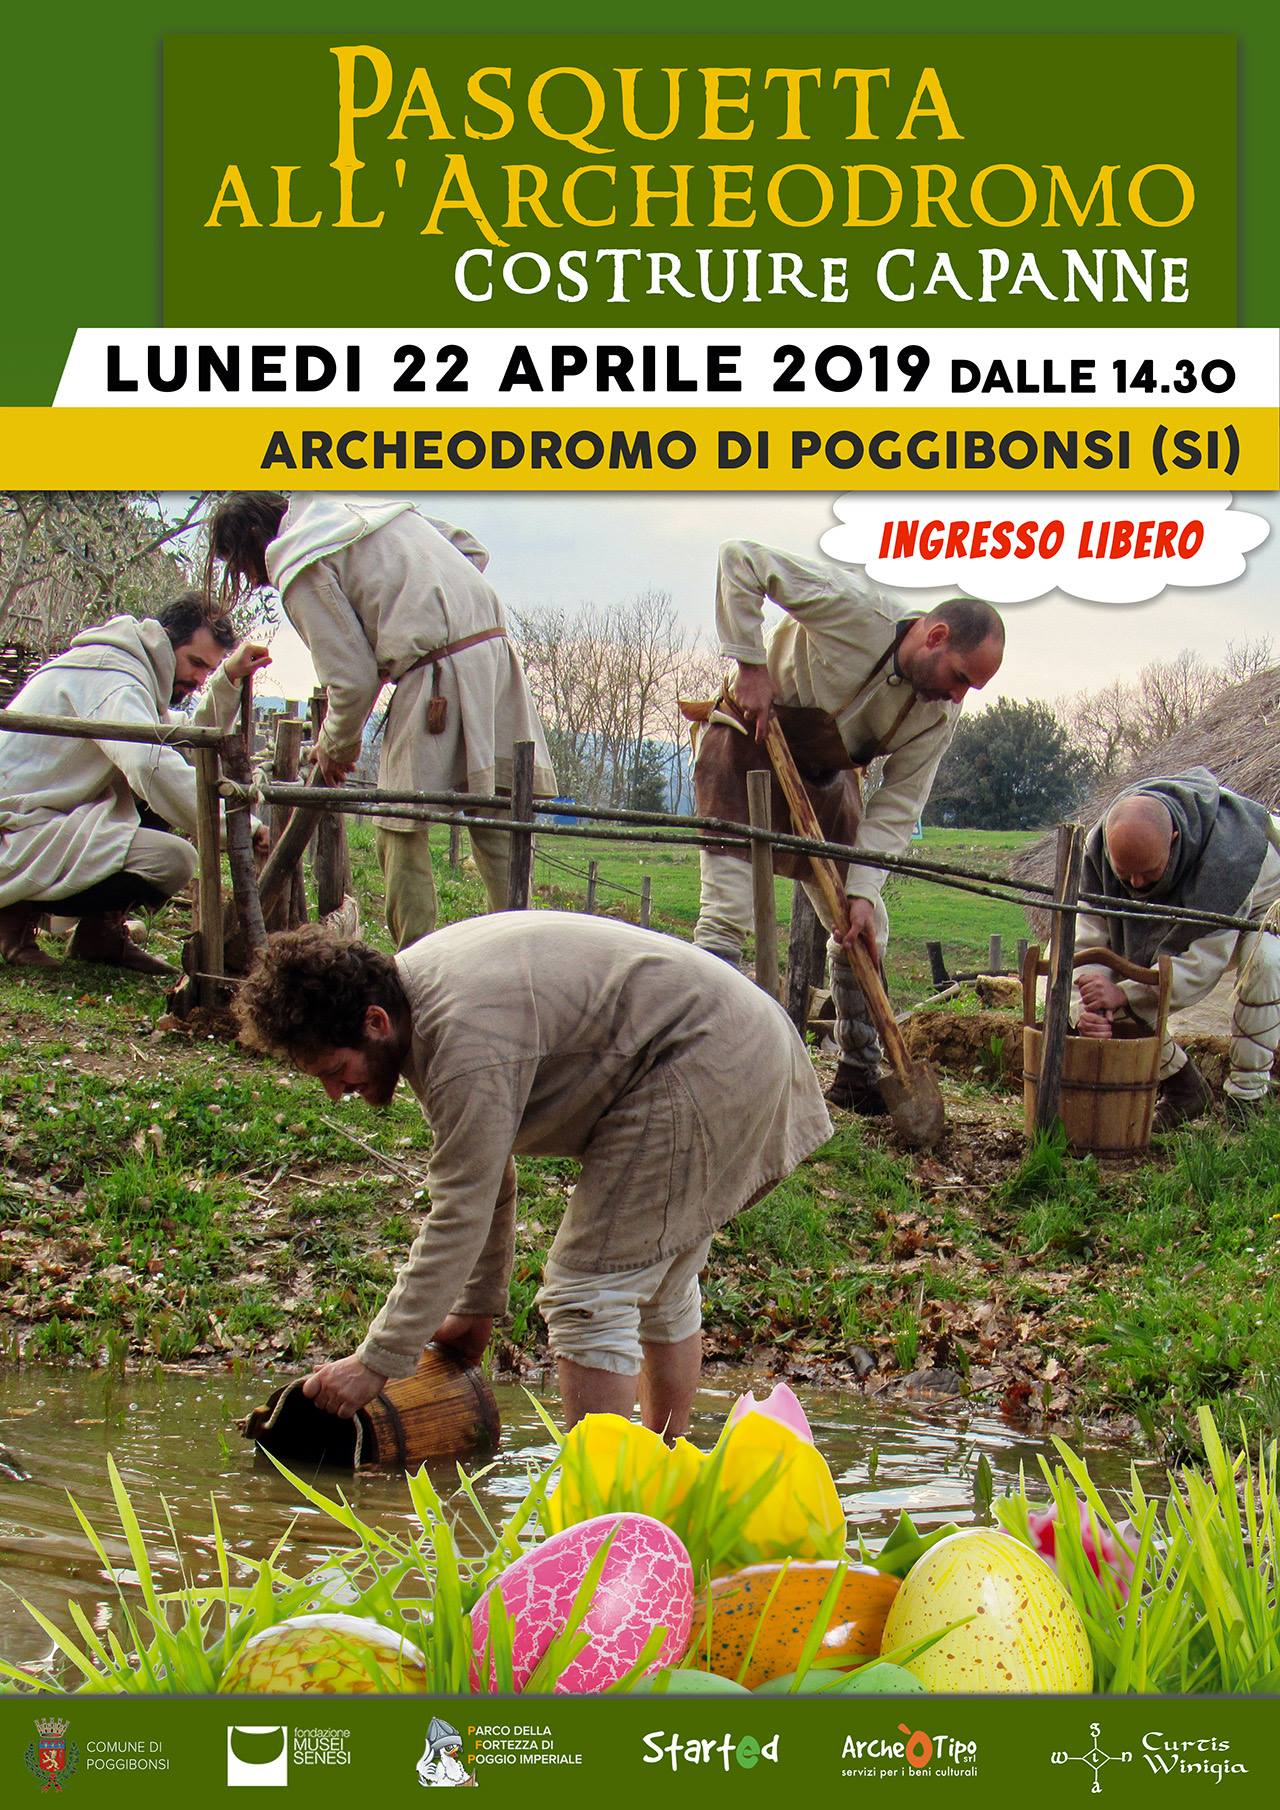 Pasquetta all'Archeodromo